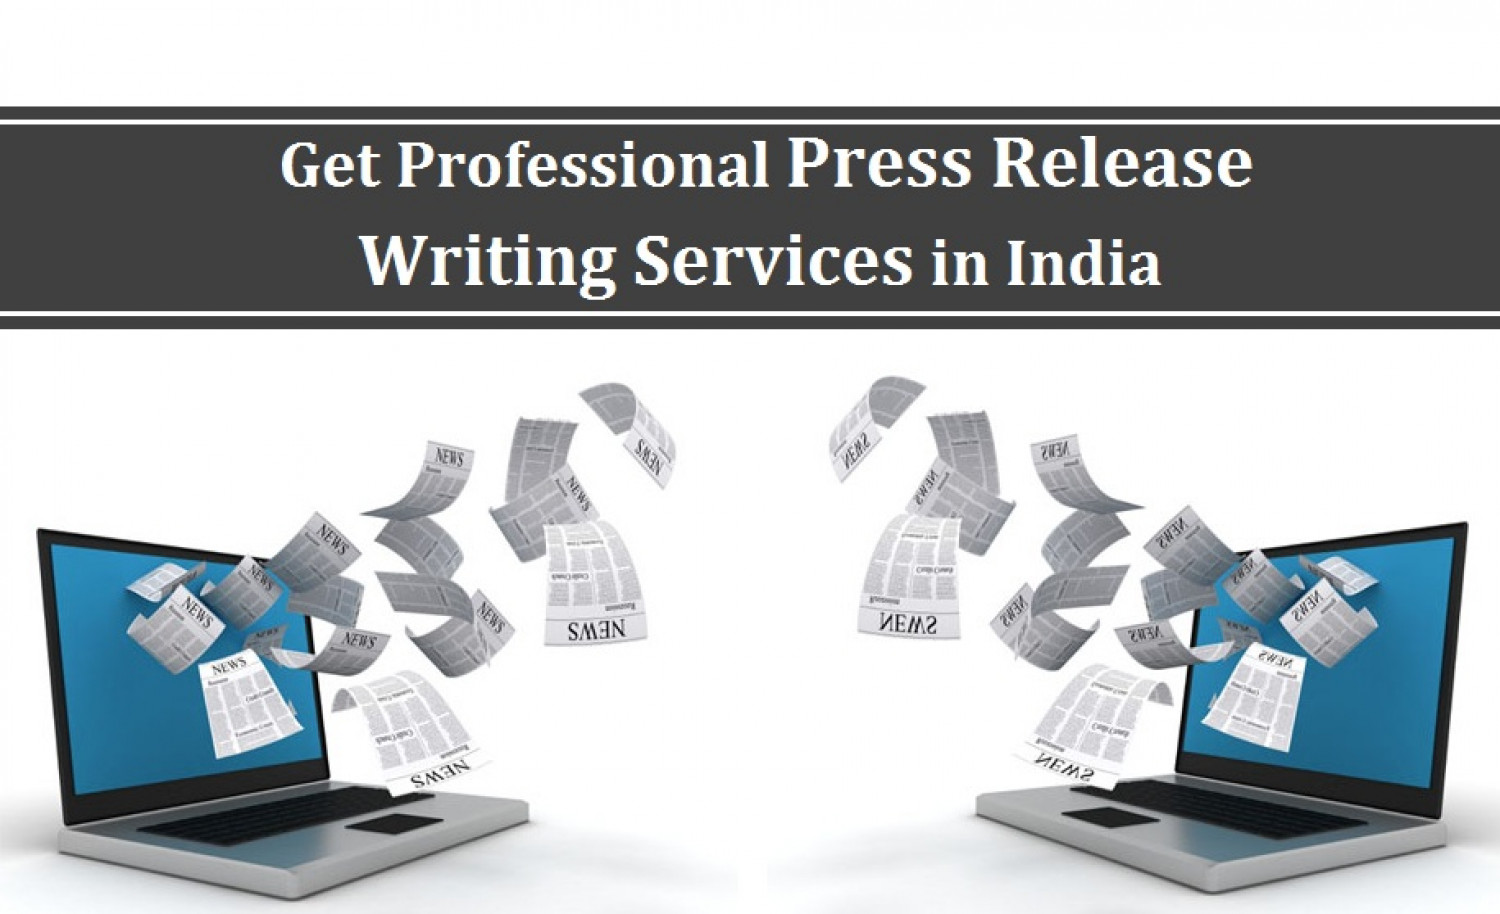 Get Professional Press Release Writing Services in India Infographic